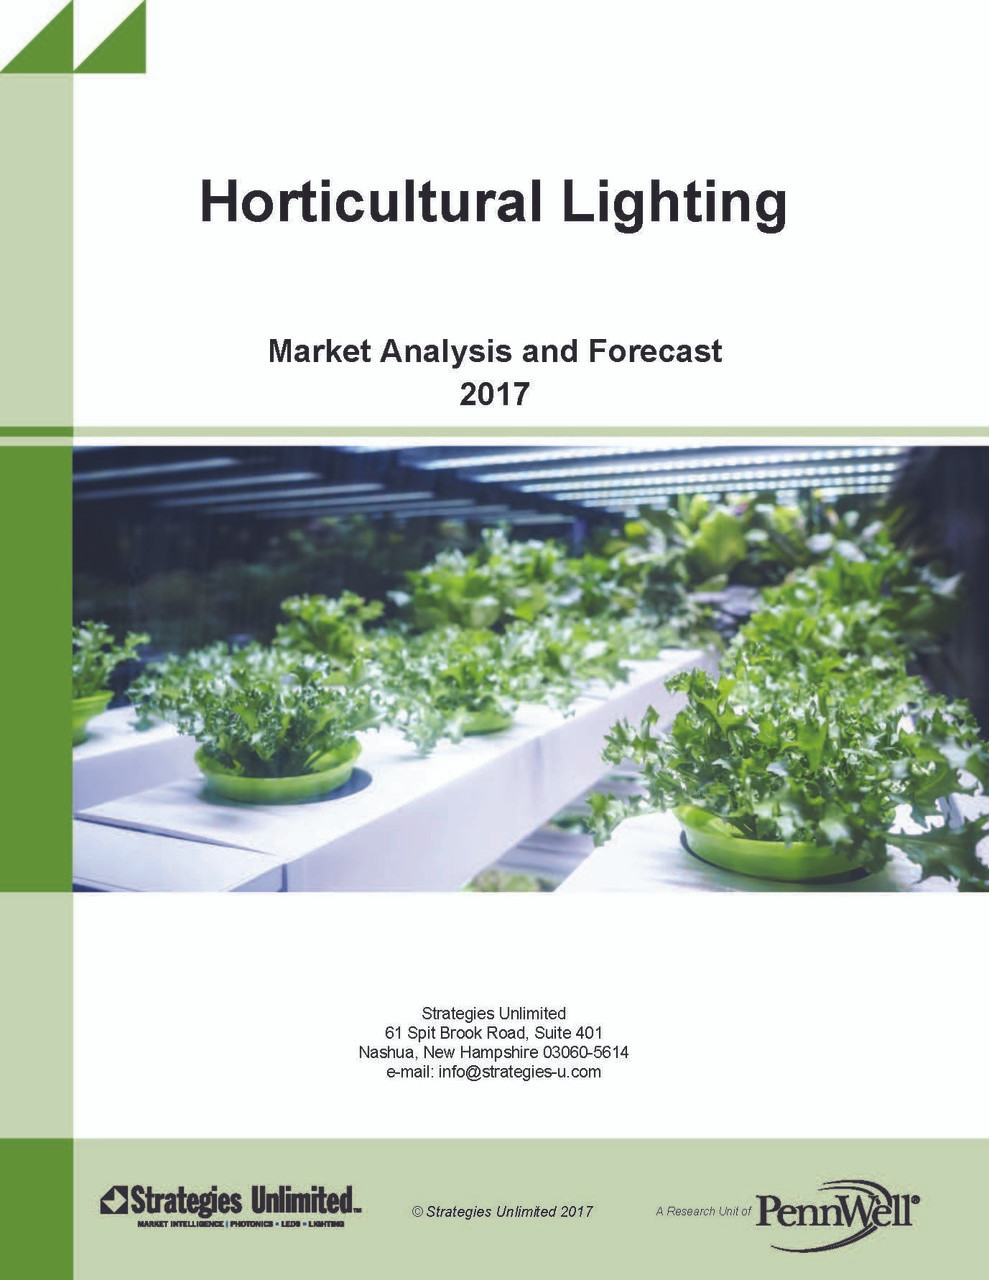 Horticultural Lighting Market Analysis And Forecast 2017